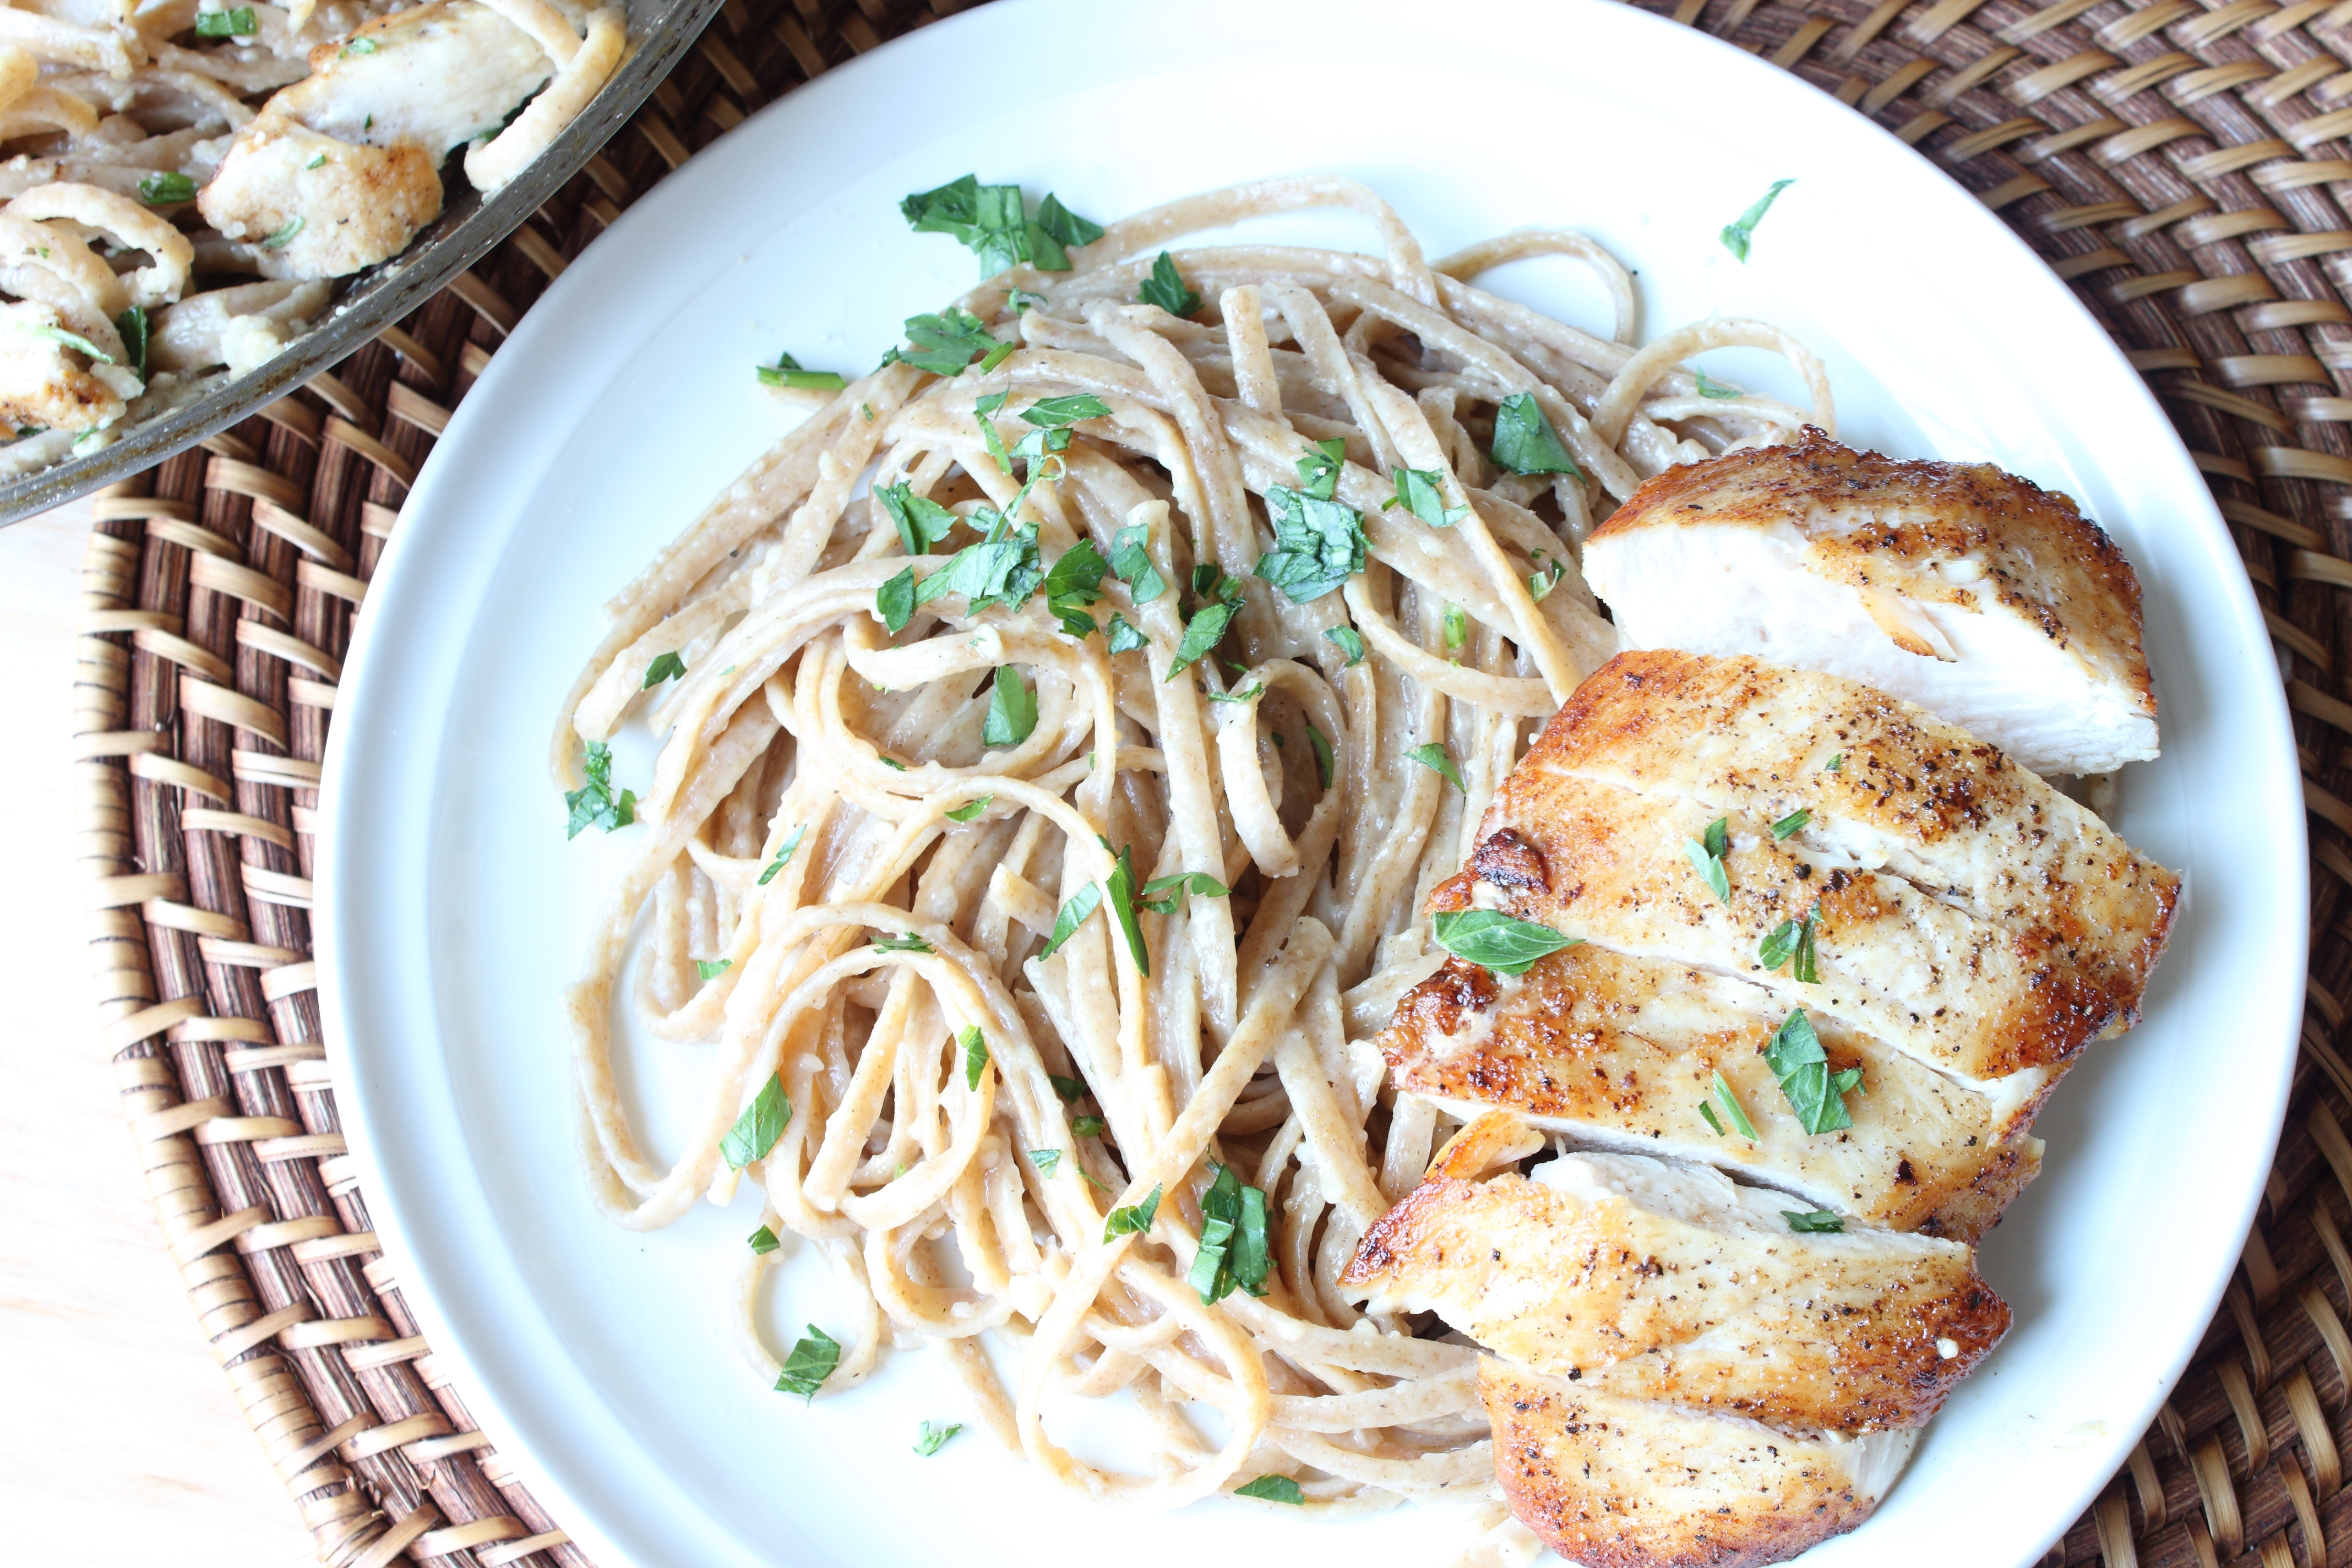 Pasta on a plate with wine sauce and a sliced chicken breast